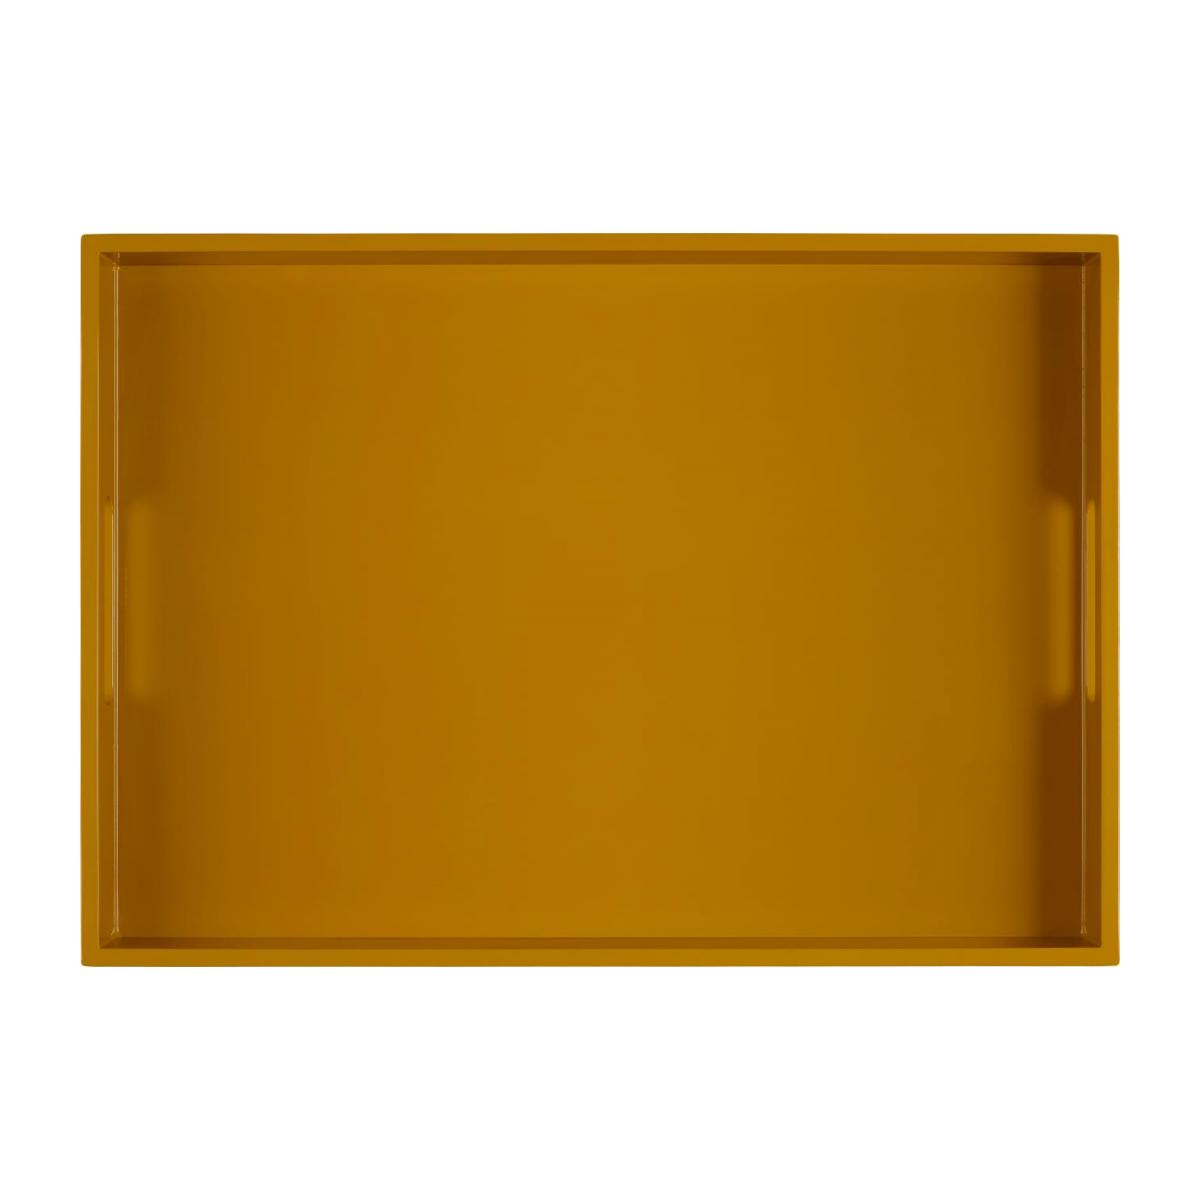 Lacquered Tray Rec. Yellow Mustard 50x35cm n°1